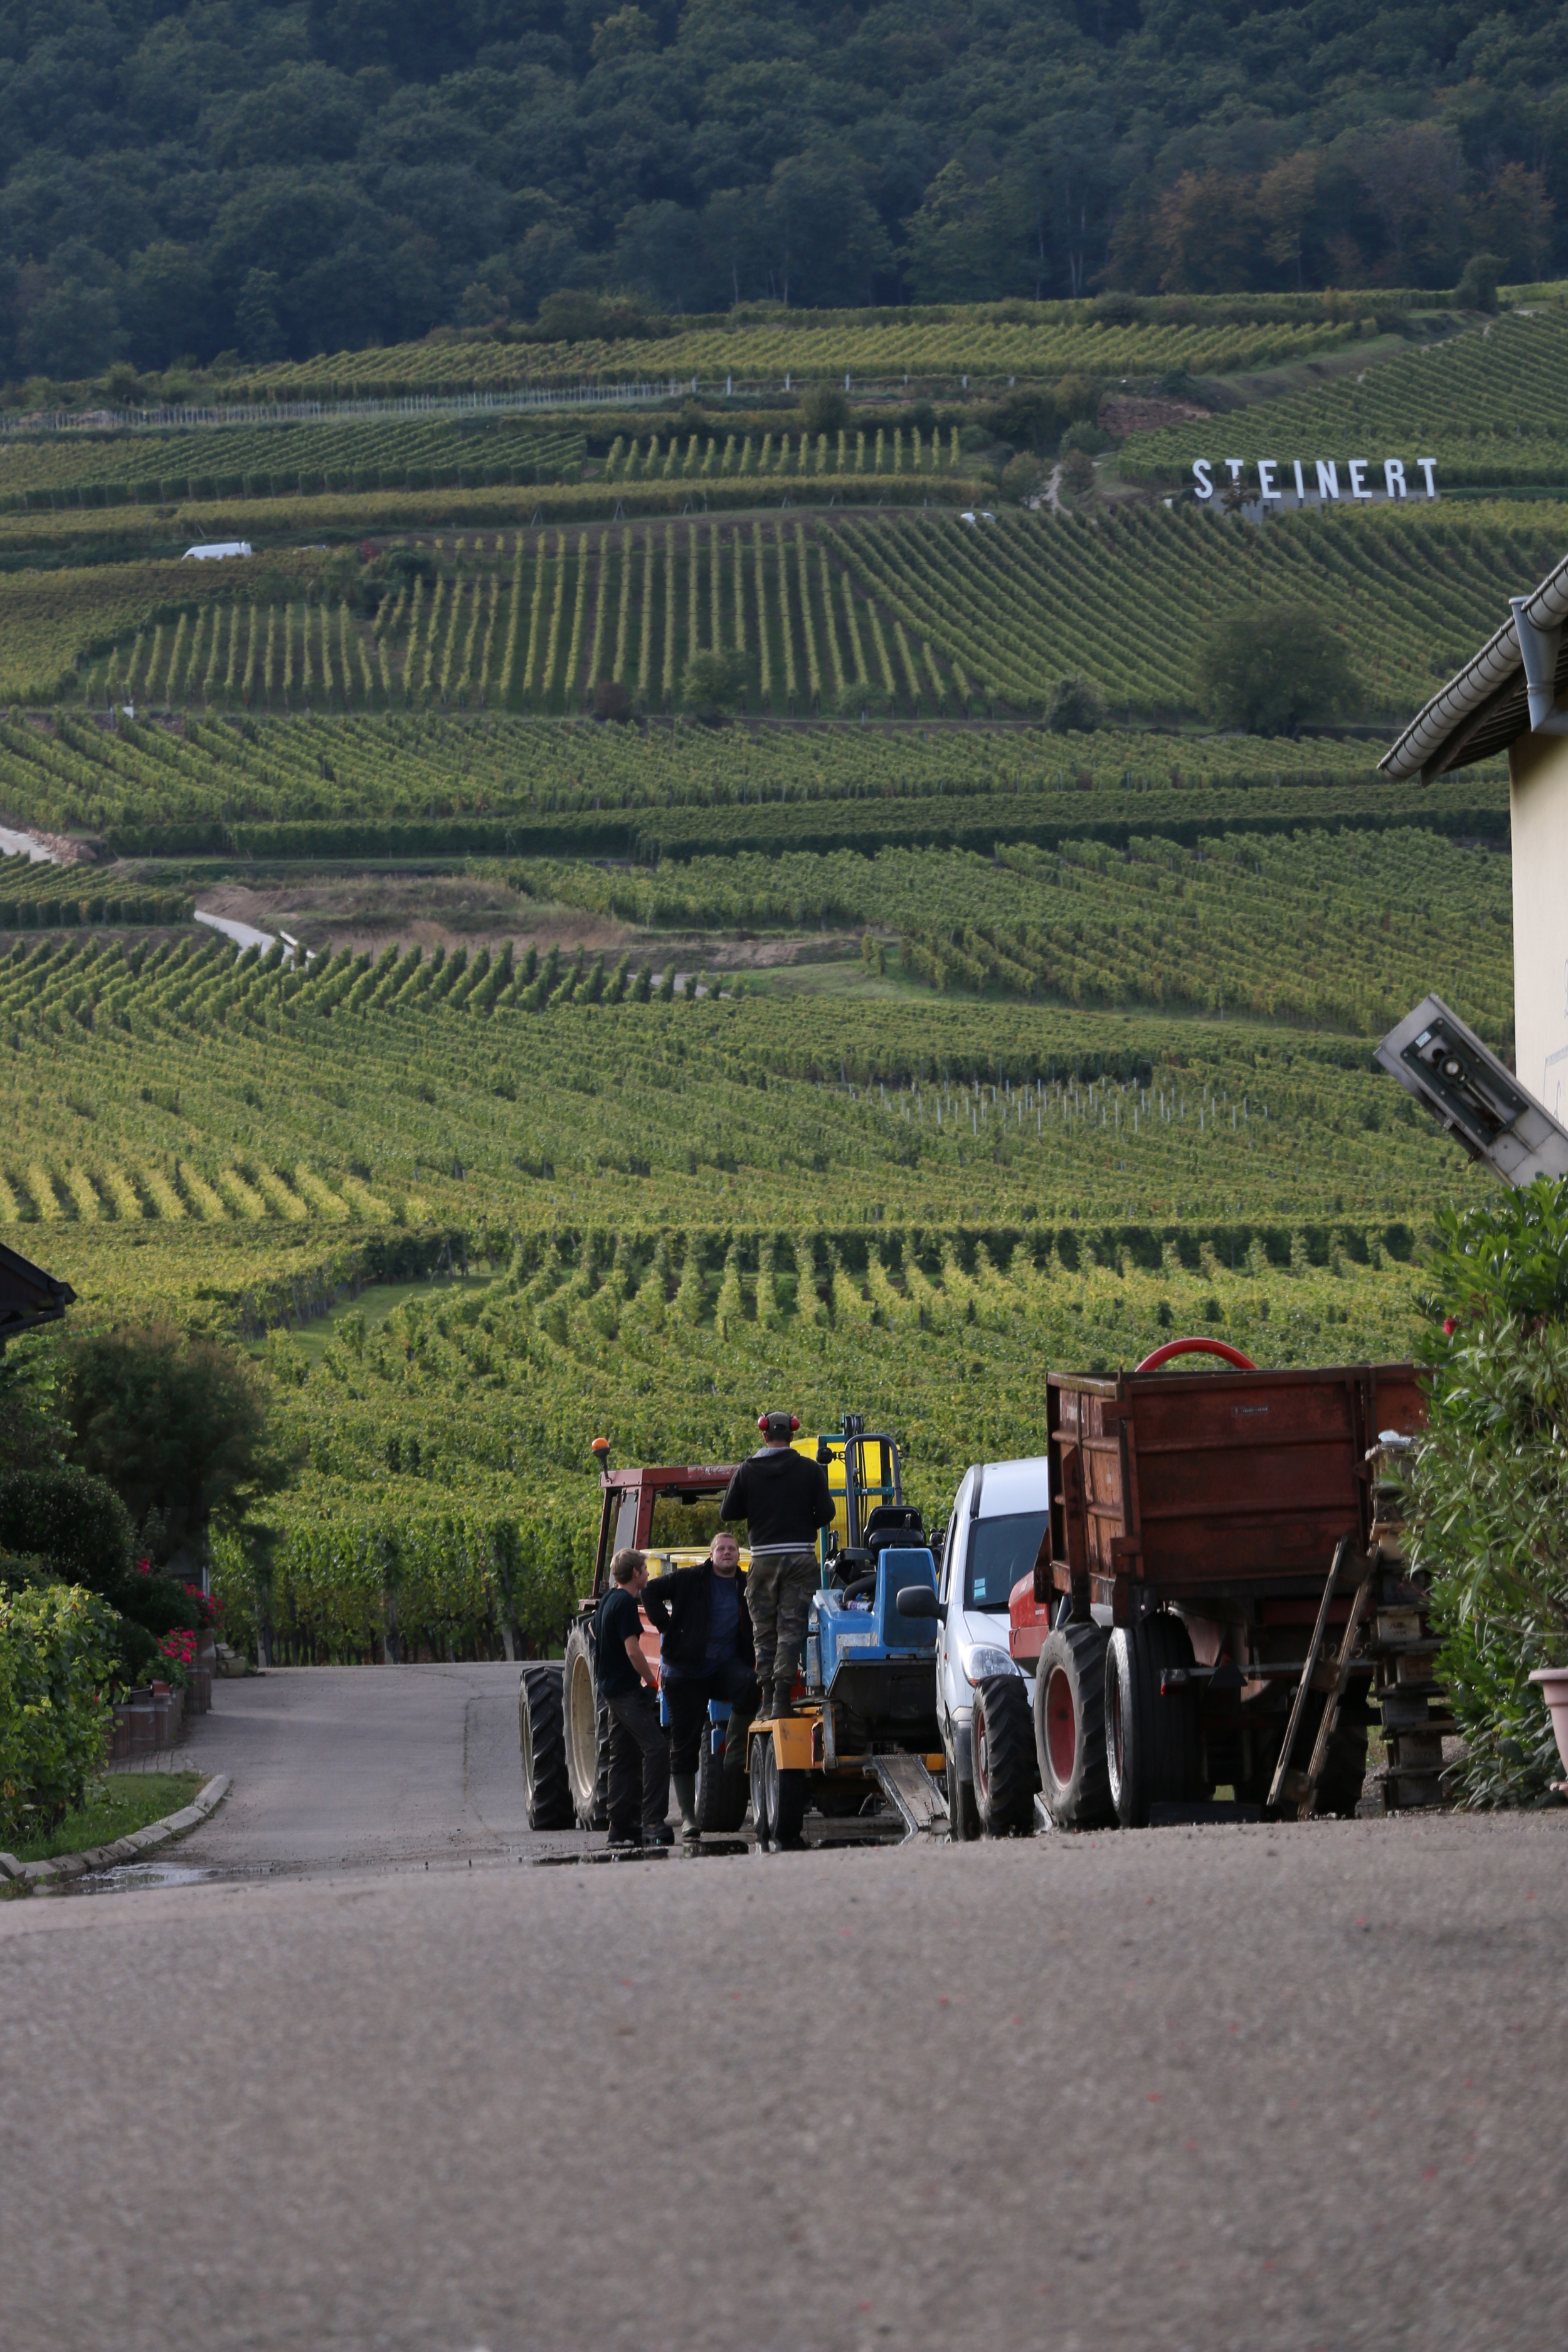 A typical scene during harvest in Alsace.